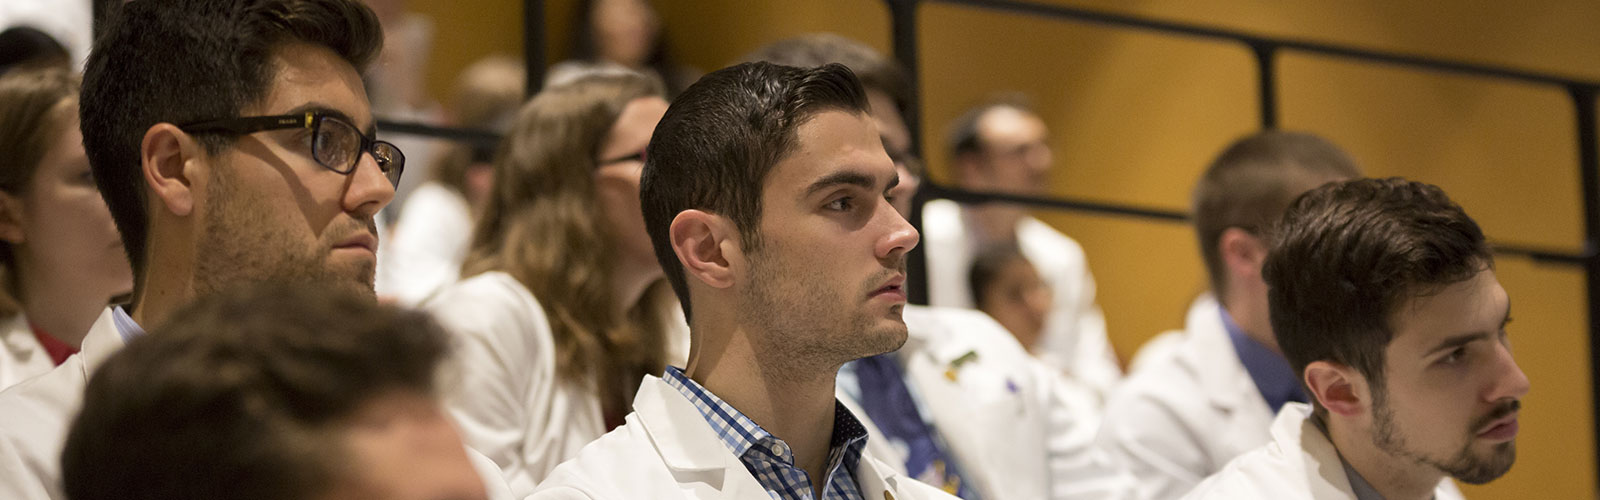 Creighton med students in Grand Rounds at Boys town hospital